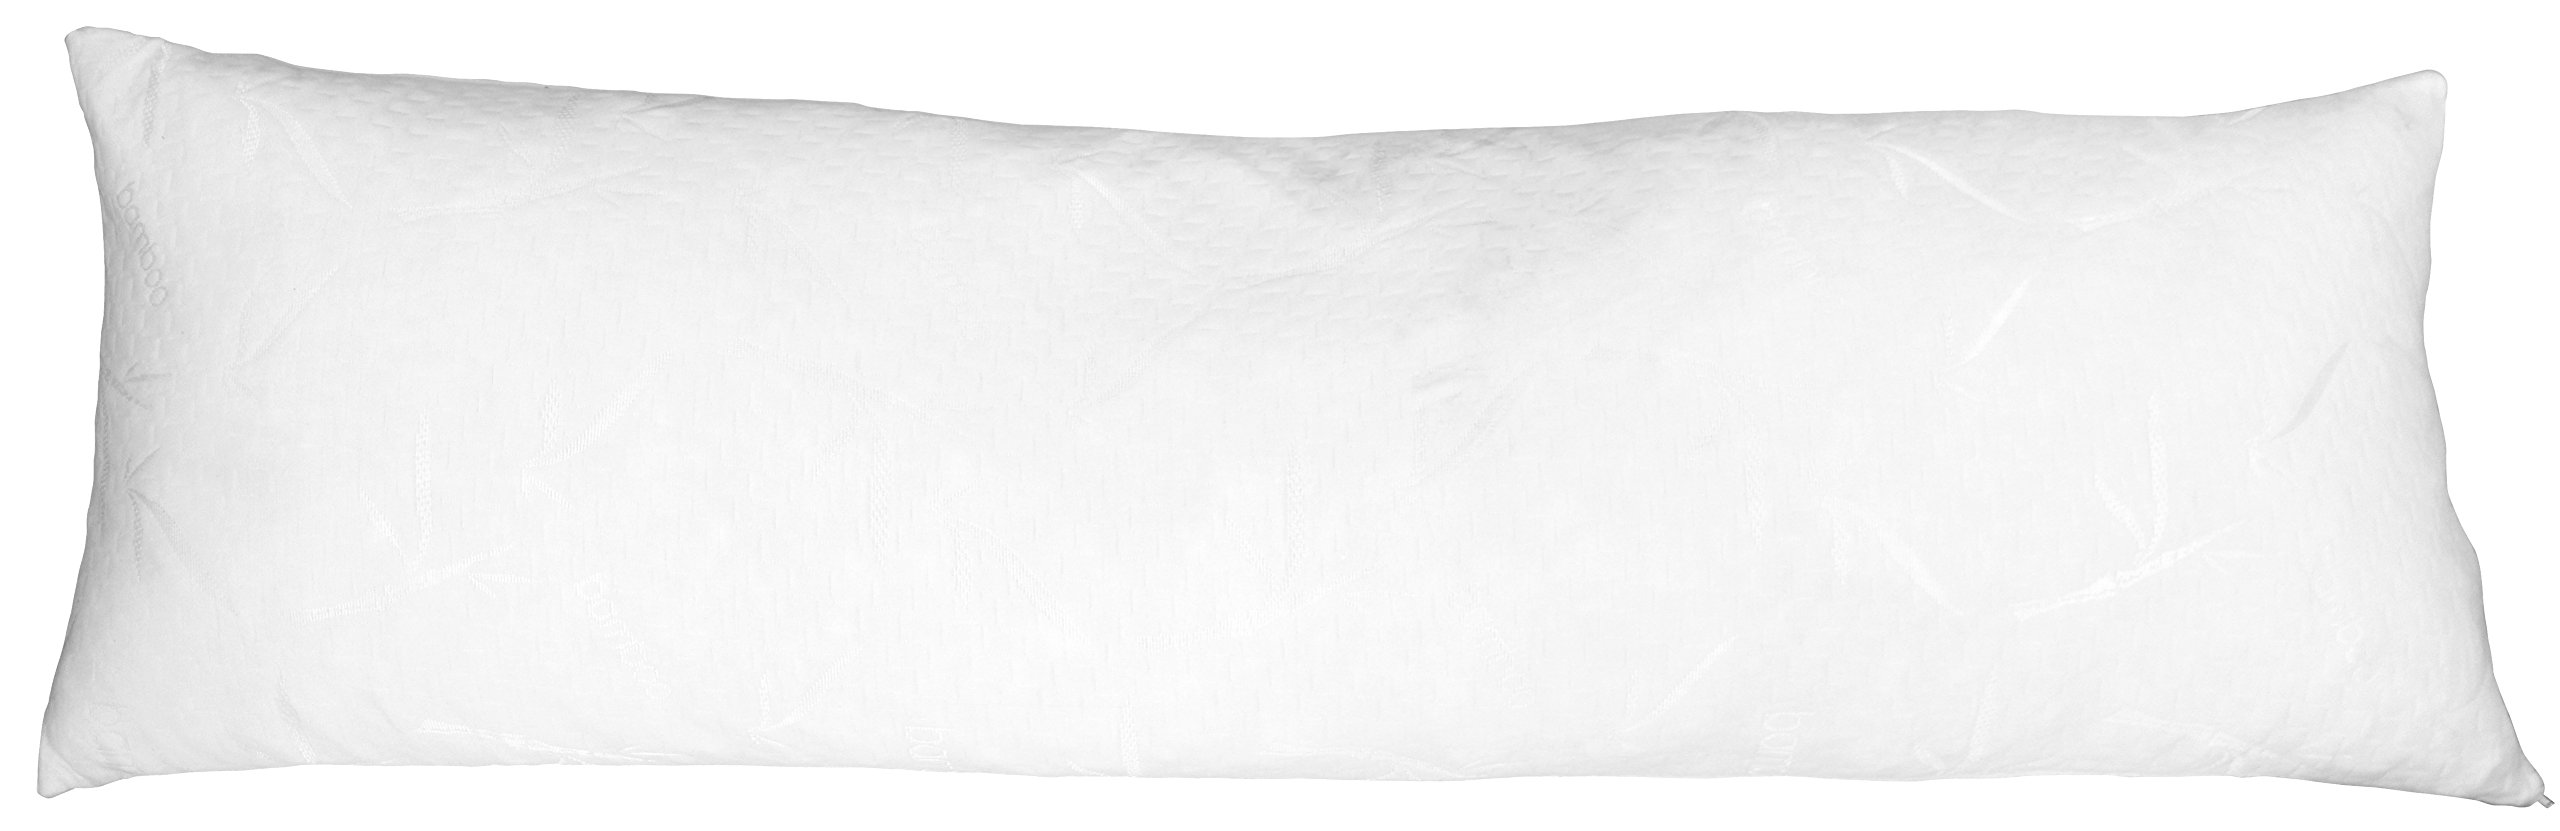 Bambusa Luxury Shredded Memory Foam Body Pillow, Premium Quality, Cooling Flow Material, Fully Adjustable, Hypoallergenic, Bio-Degradable, 100% Recycled, Made In USA